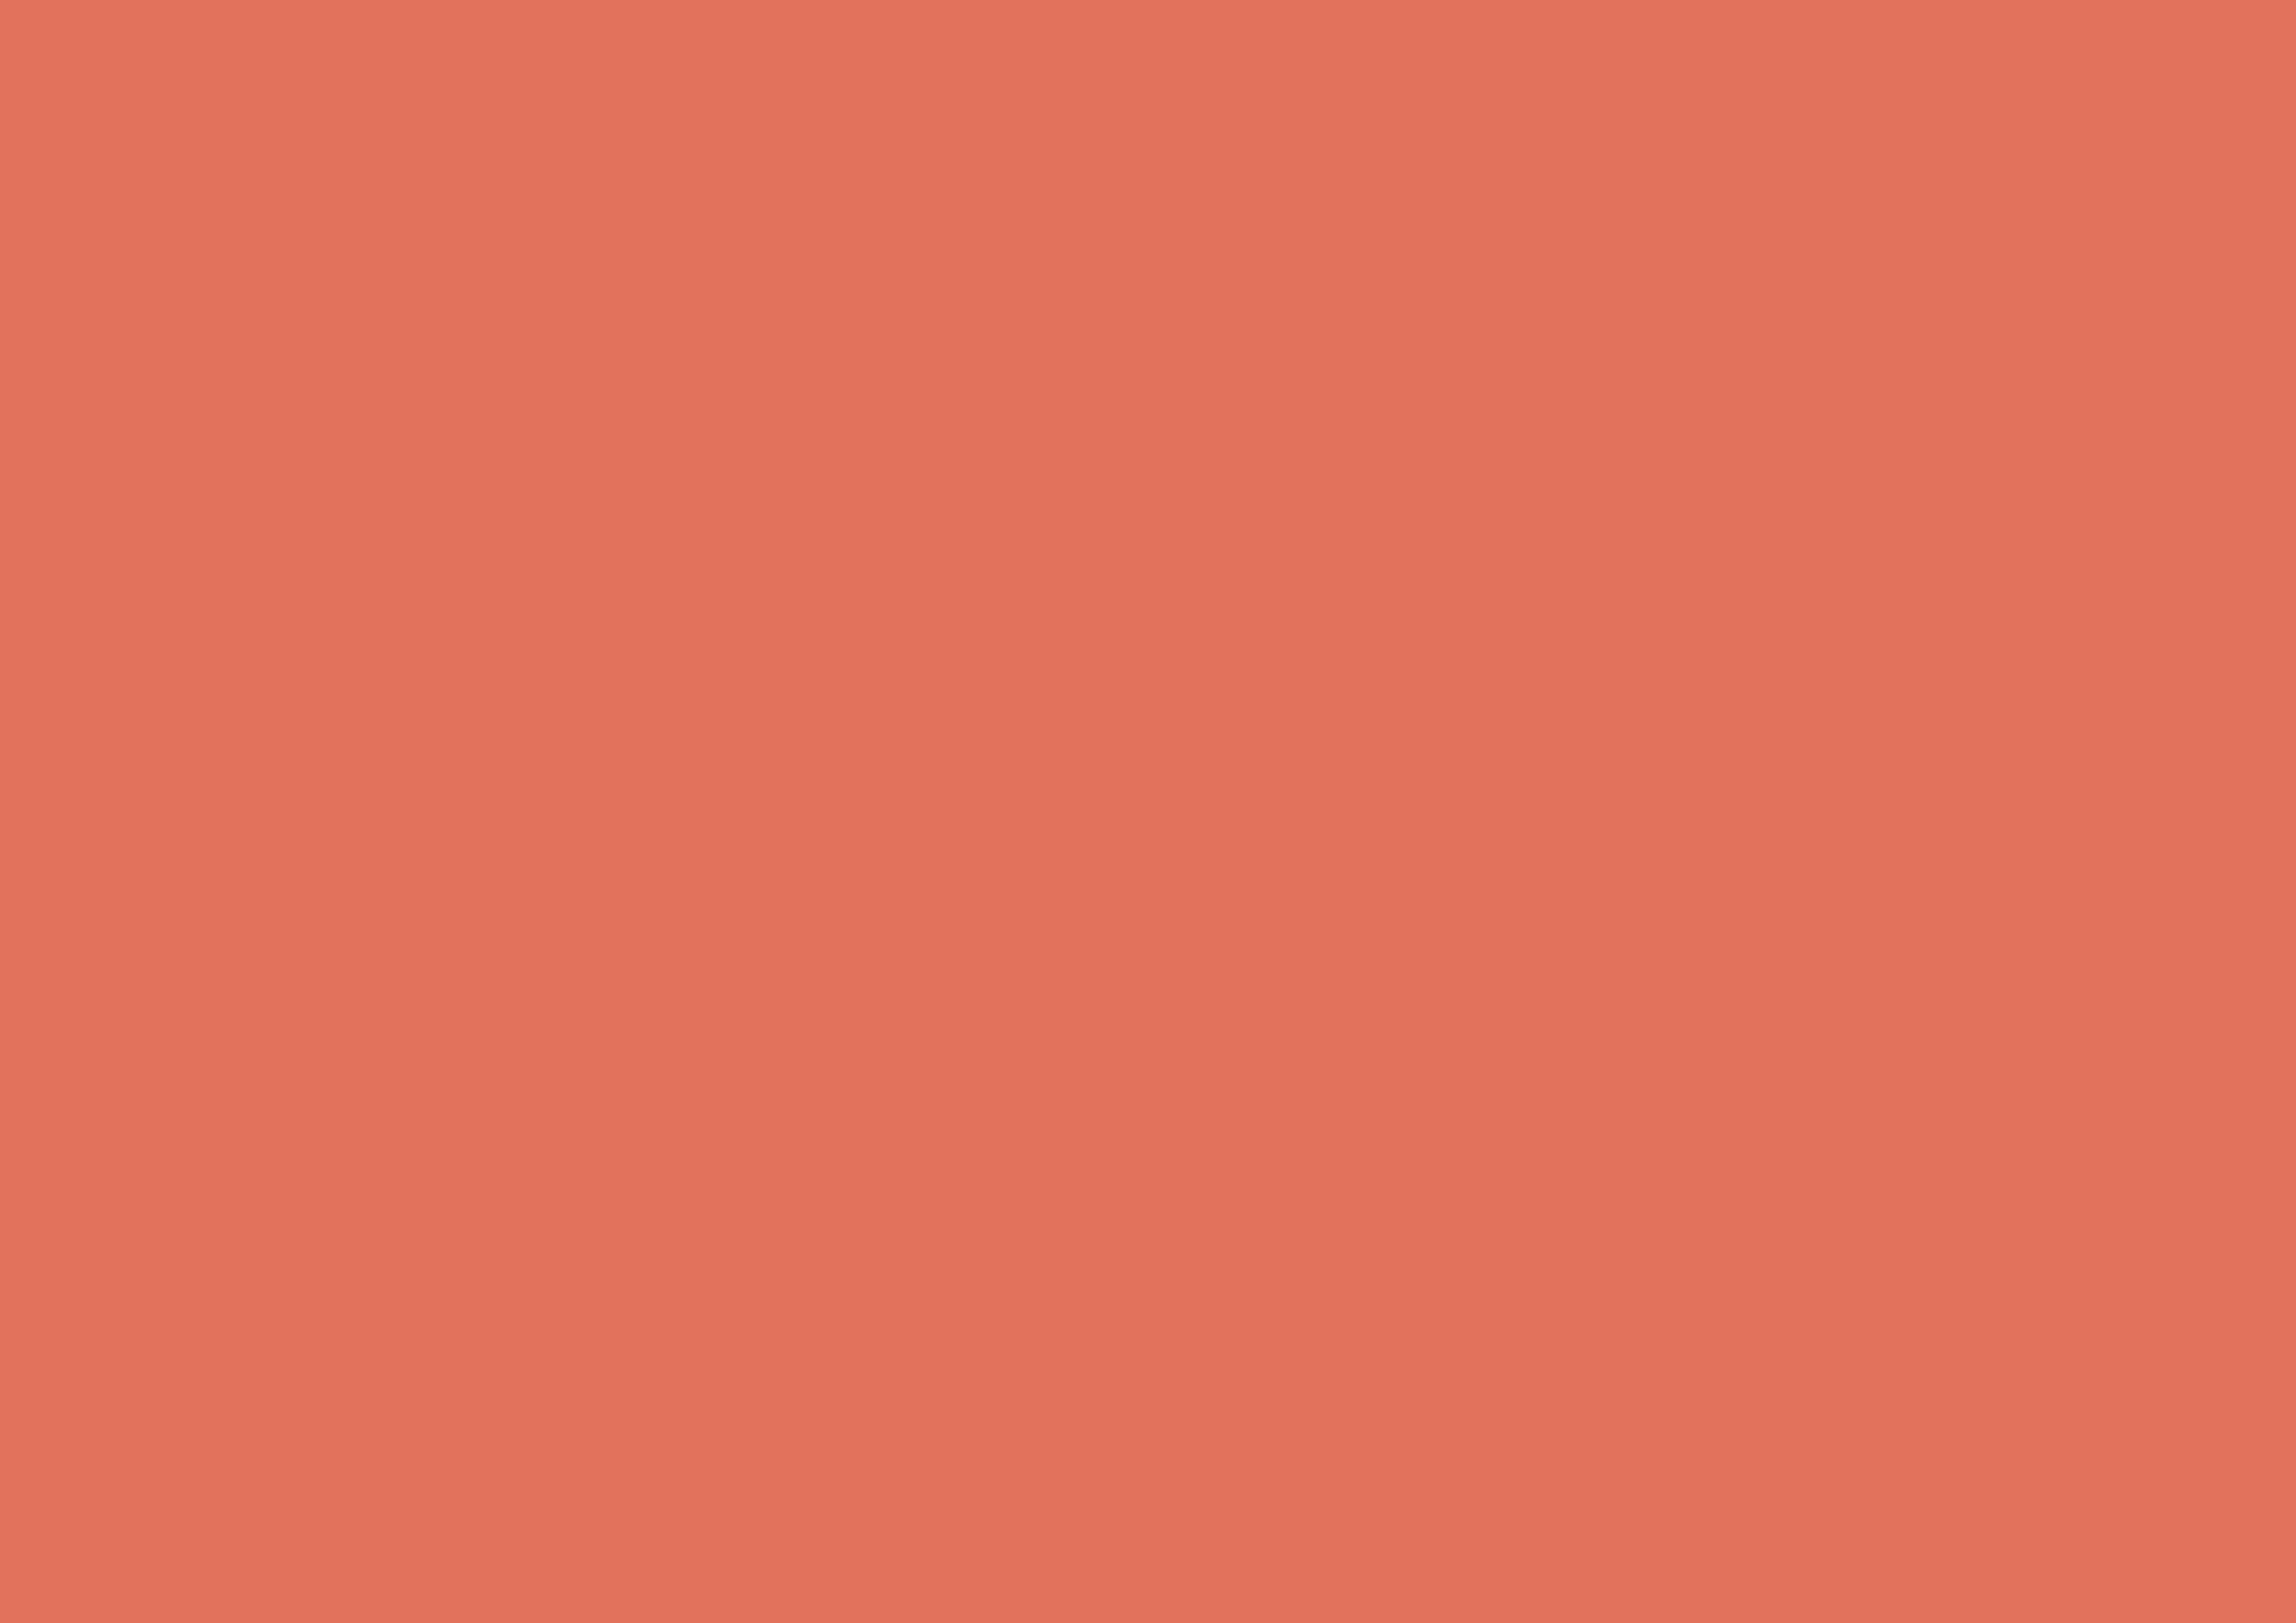 3508x2480 Terra Cotta Solid Color Background